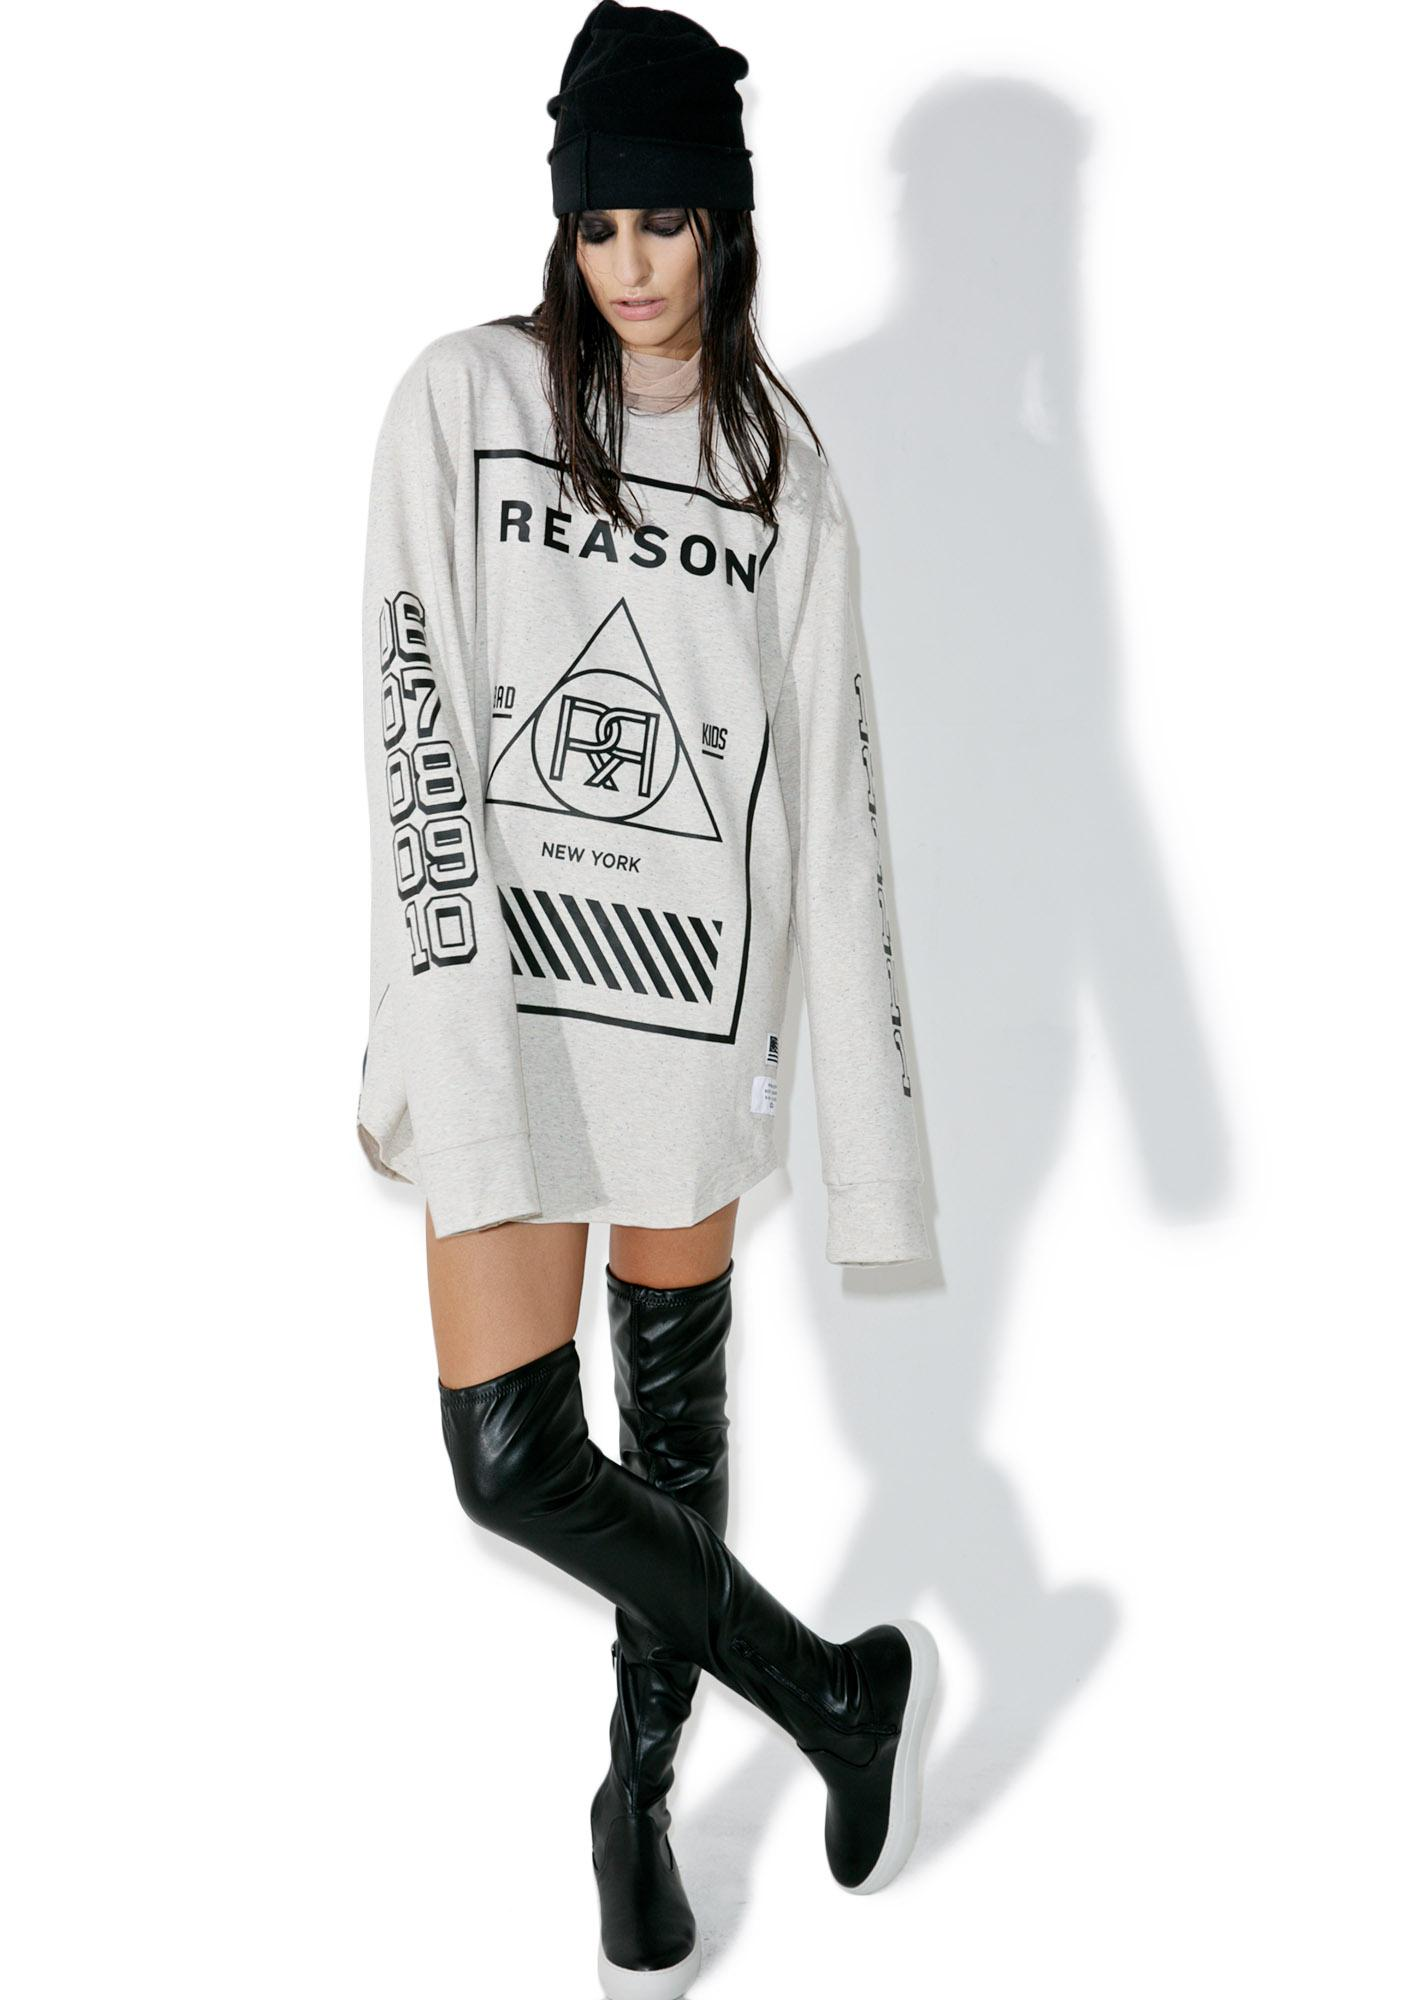 Reason Years Long Sleeve T-Shirt